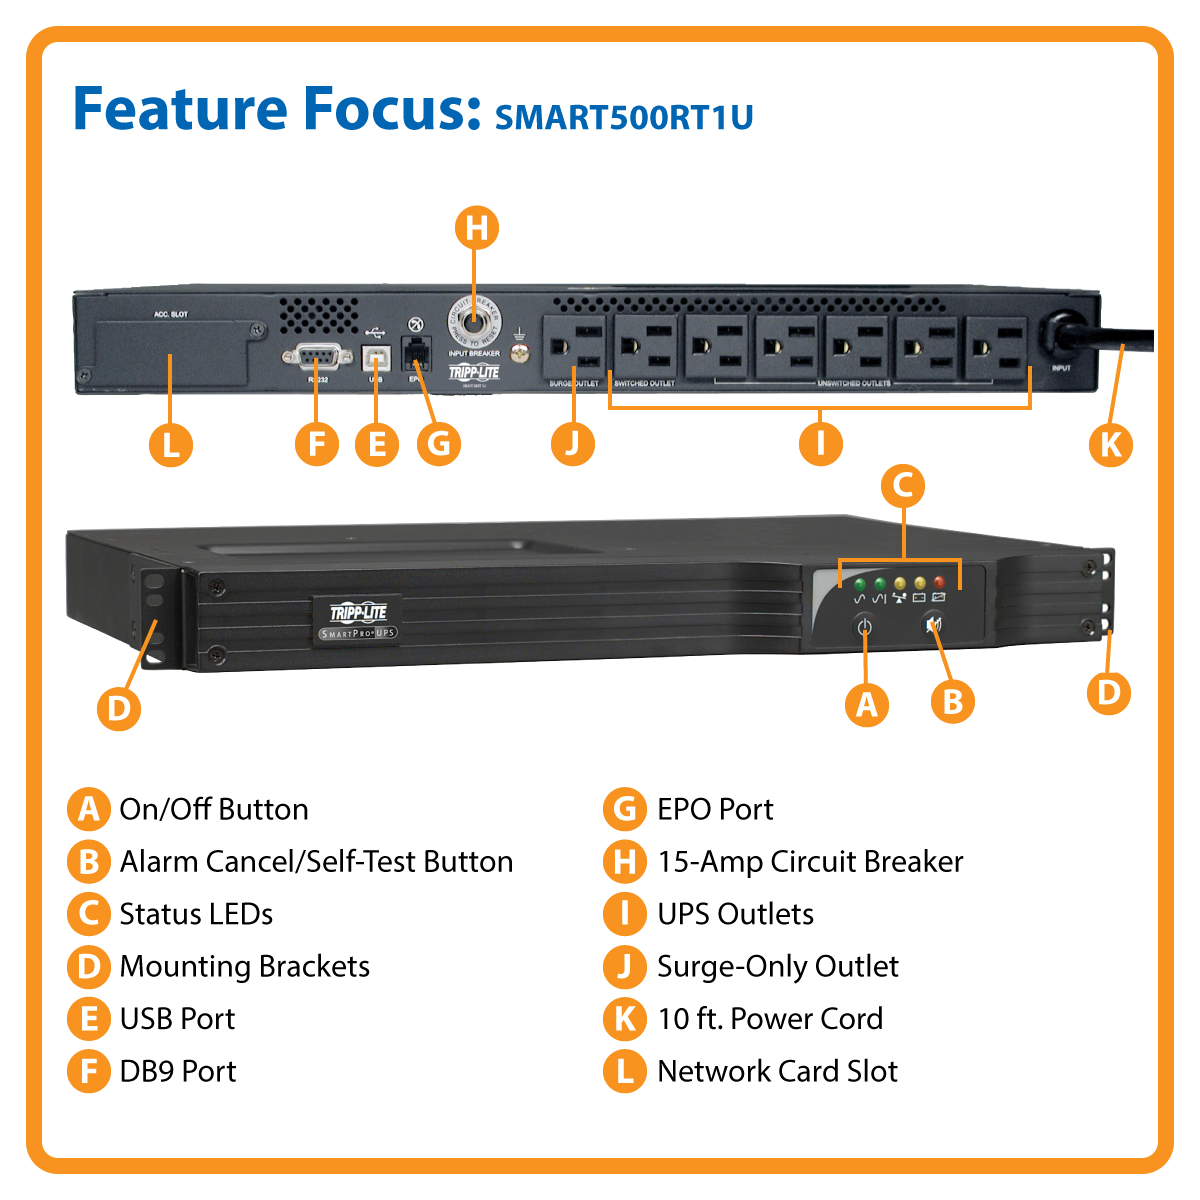 Tripp Lite 500va Smart Ups Back Up 300w Line Interactive 1u Rackmount Network Card Options Usb Db9 Serial Smart500rt1u To Rj11 Cable Wiring Diagram Battery Volts Amps Cables View Larger